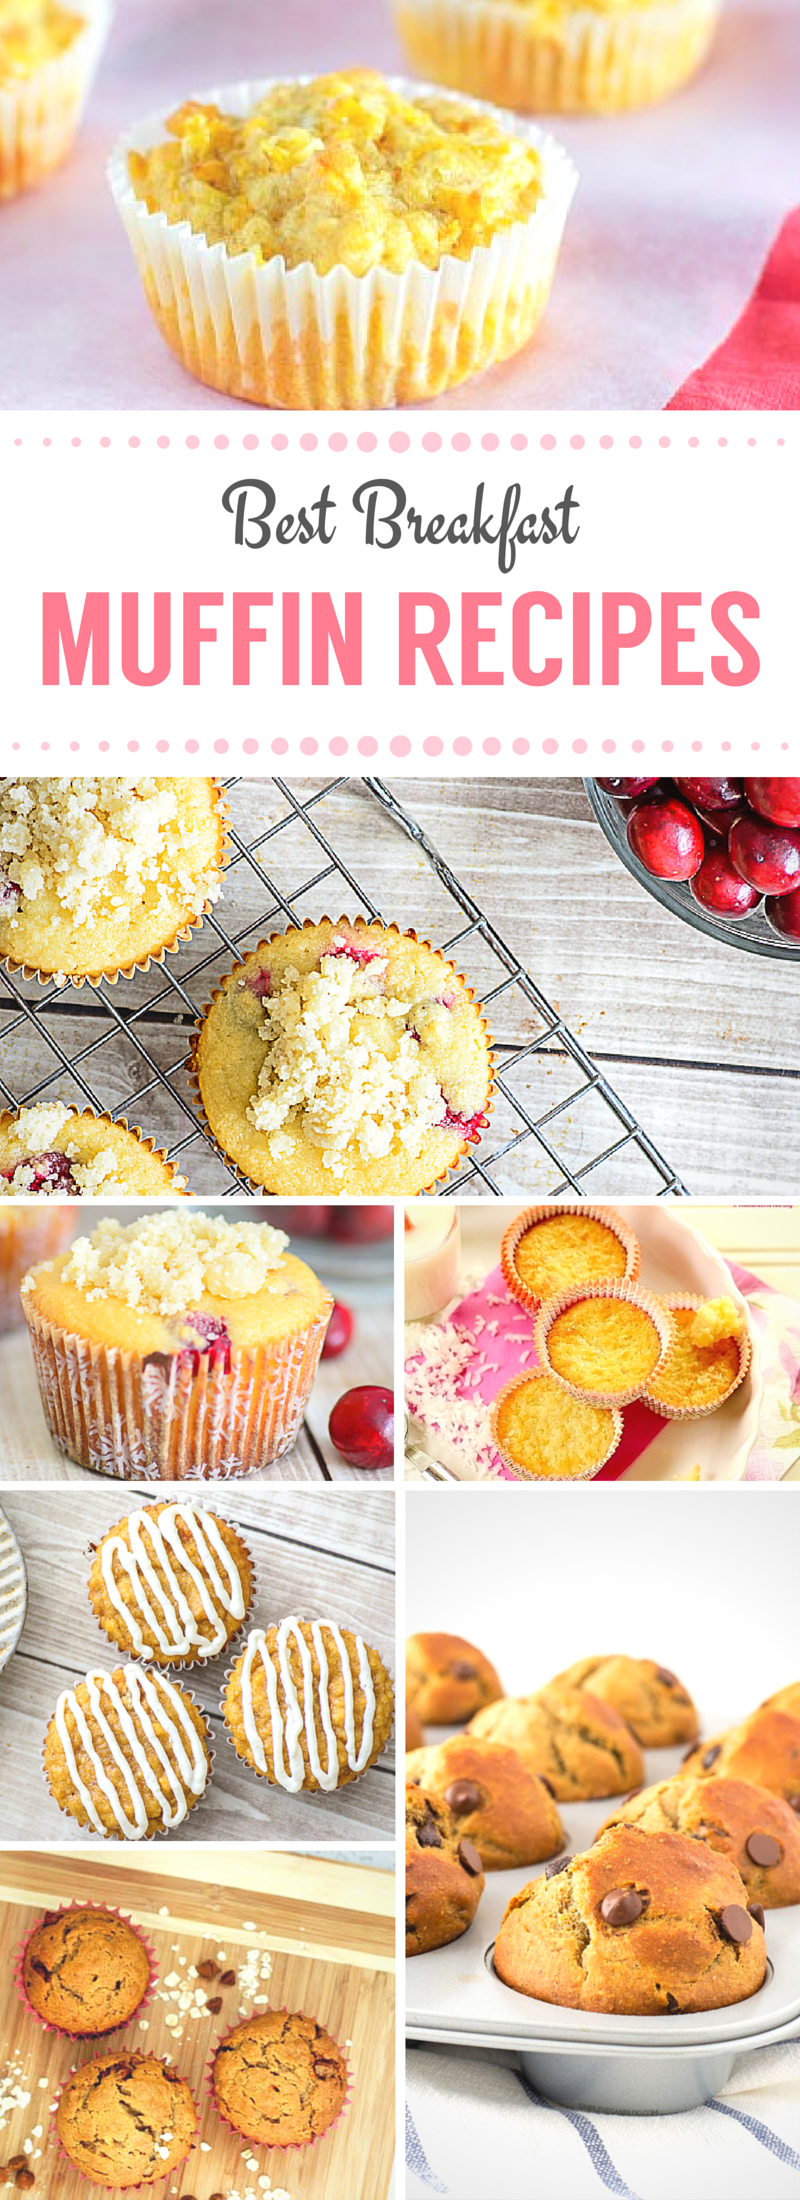 50 Scrumptious Breakfast Muffin Recipes